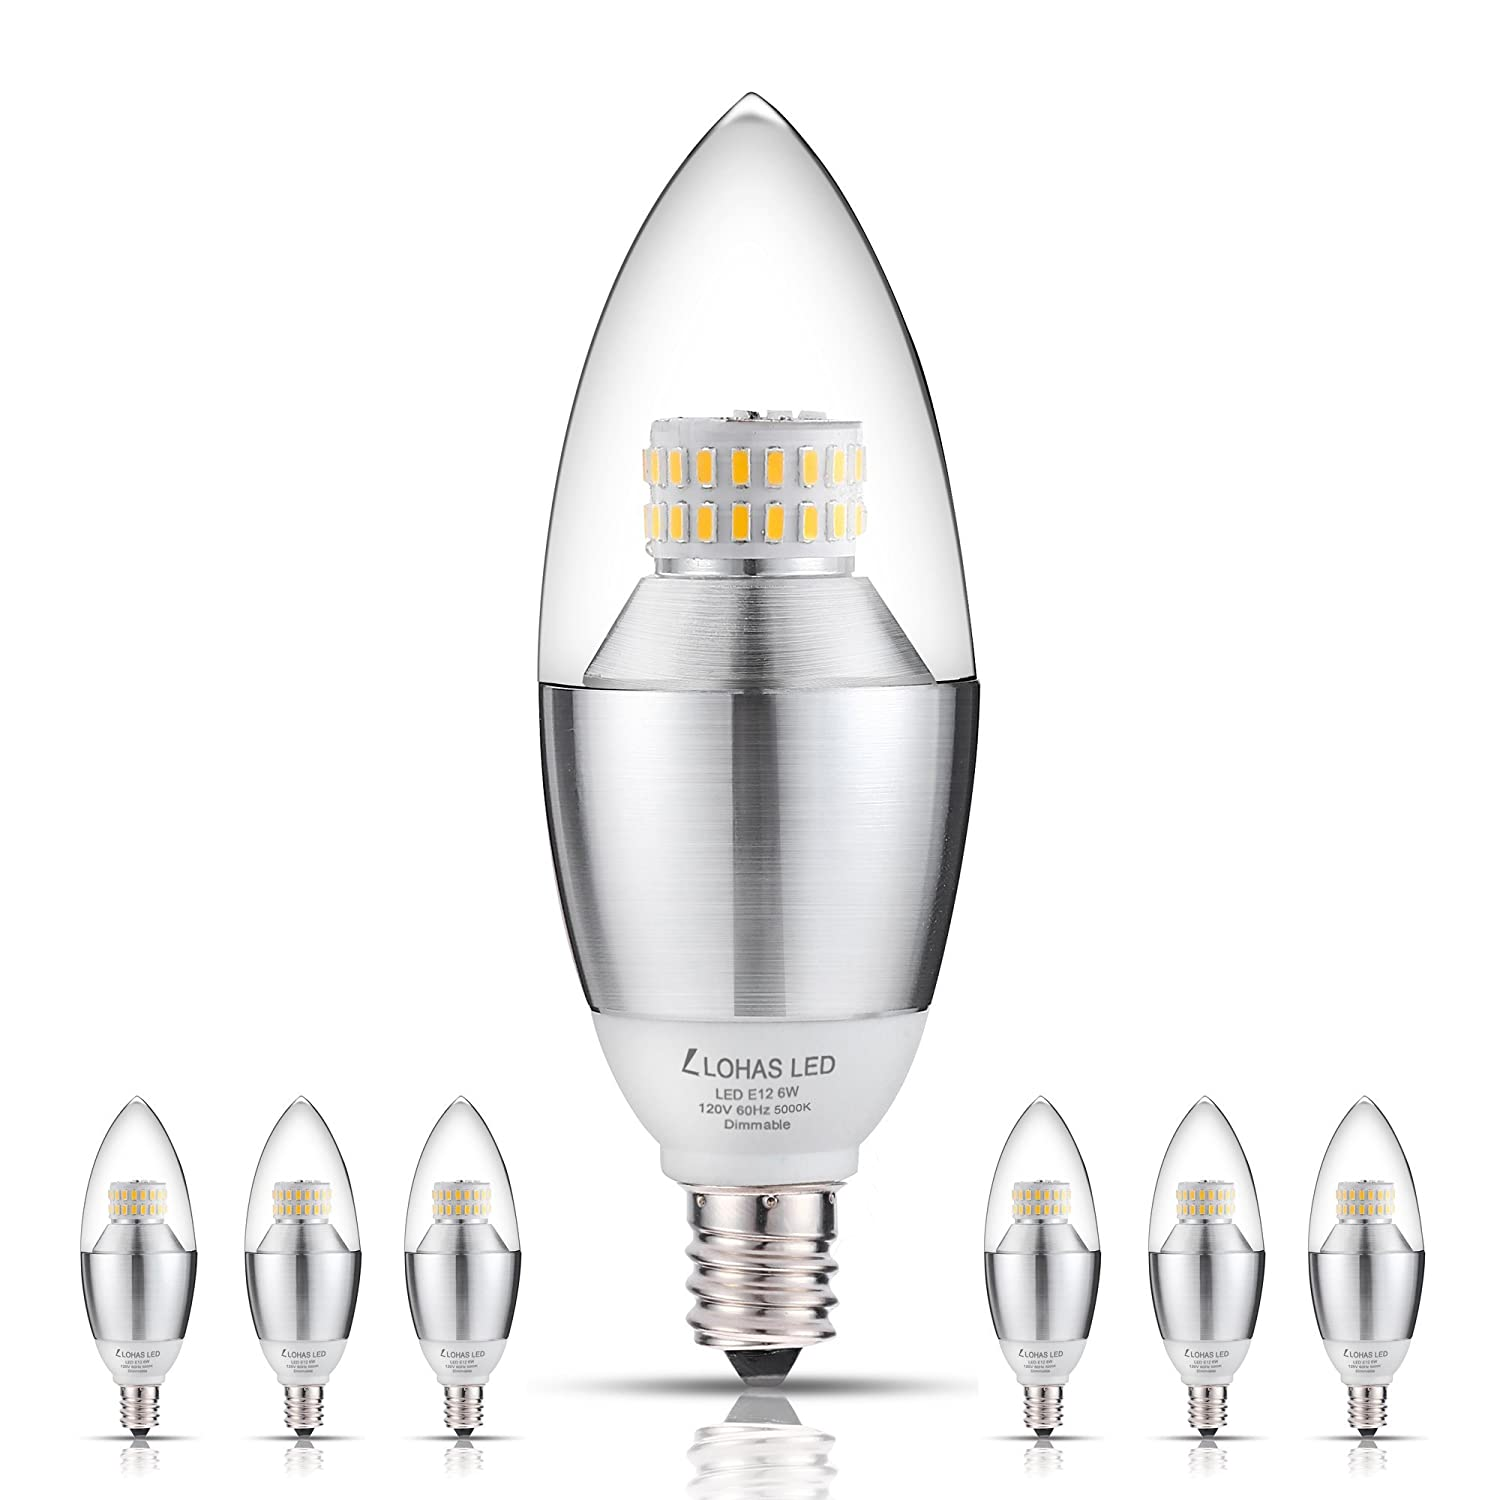 Candelabra Led Bulb: LOHAS Candelabra Bulbs, LED Bulbs Dimmable, 6W (60 Watt